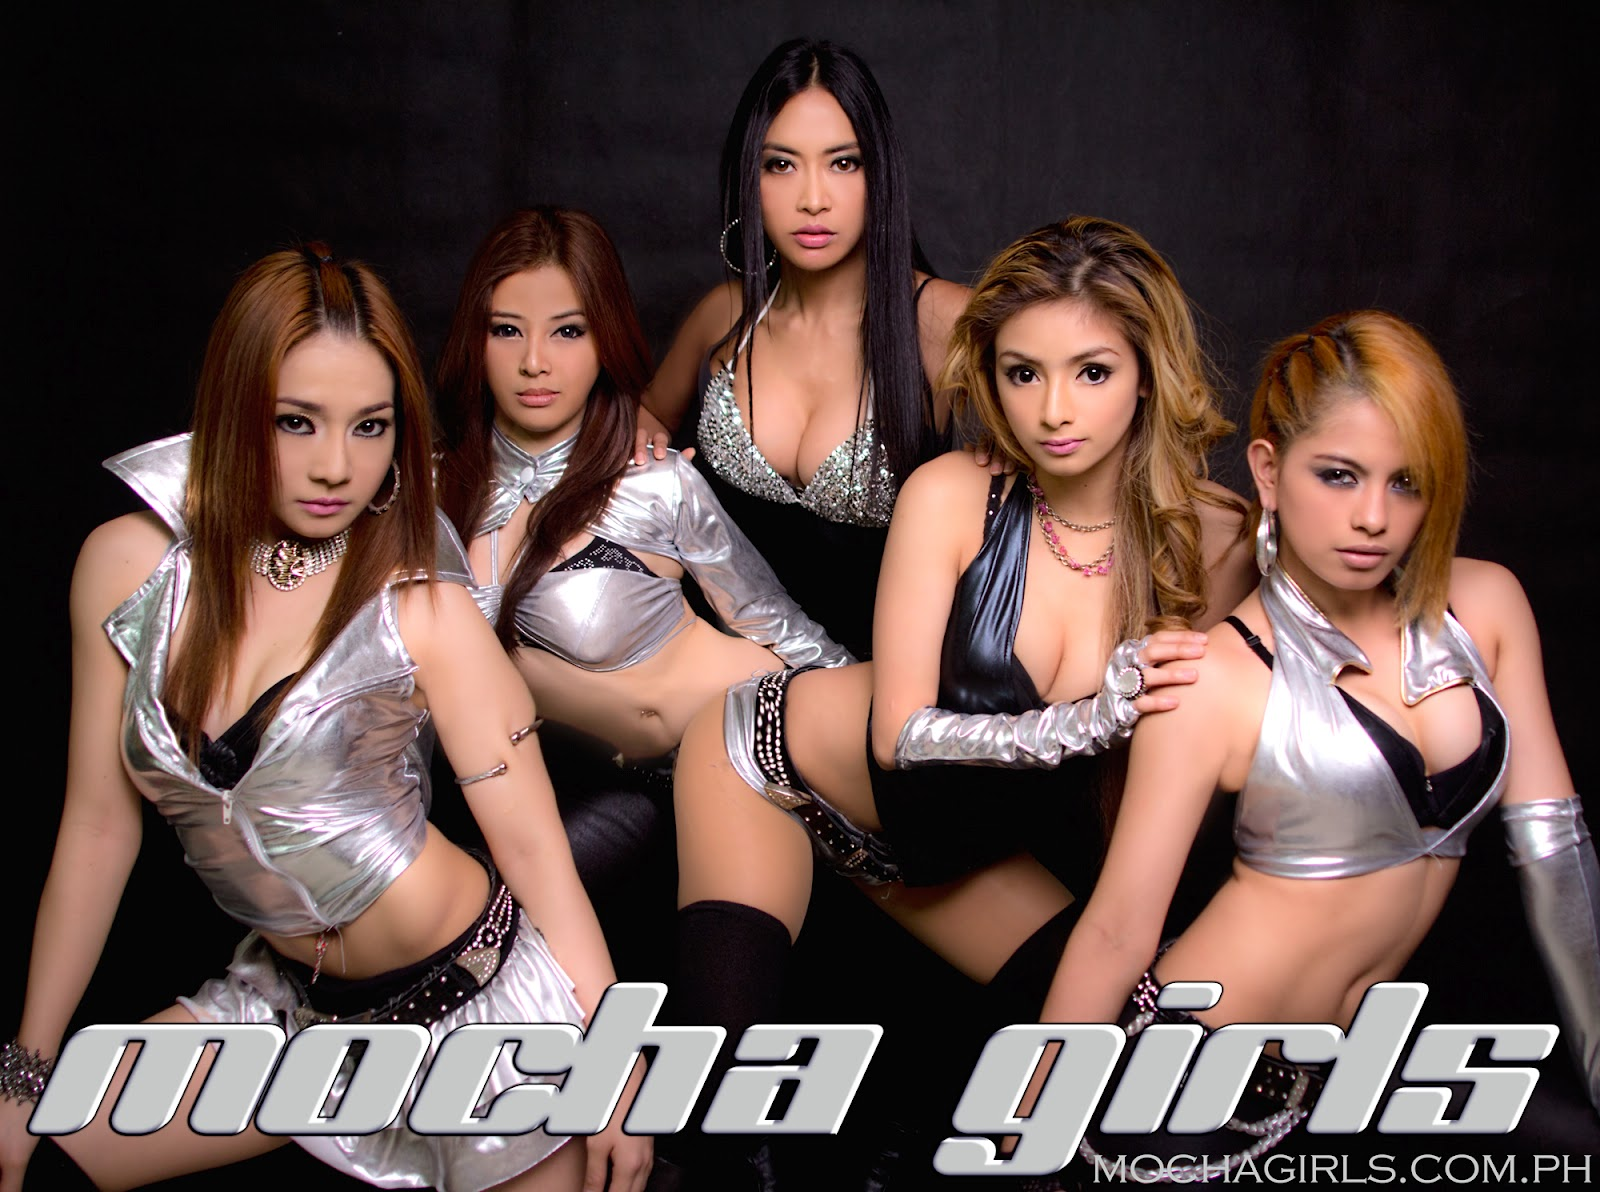 Mocha girls photos